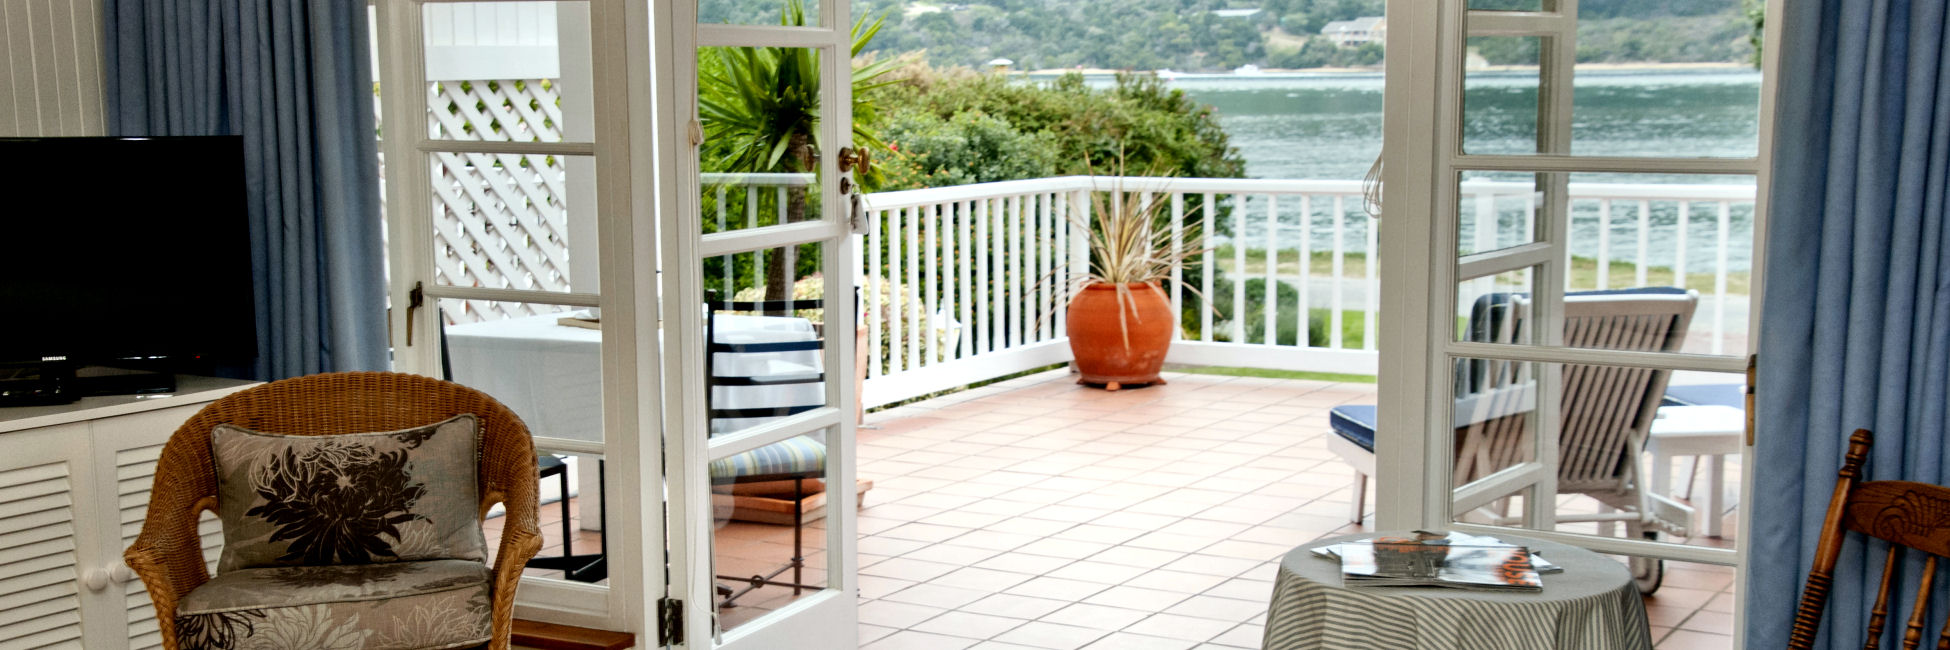 Traveller Reviews on Knysna Accommodation